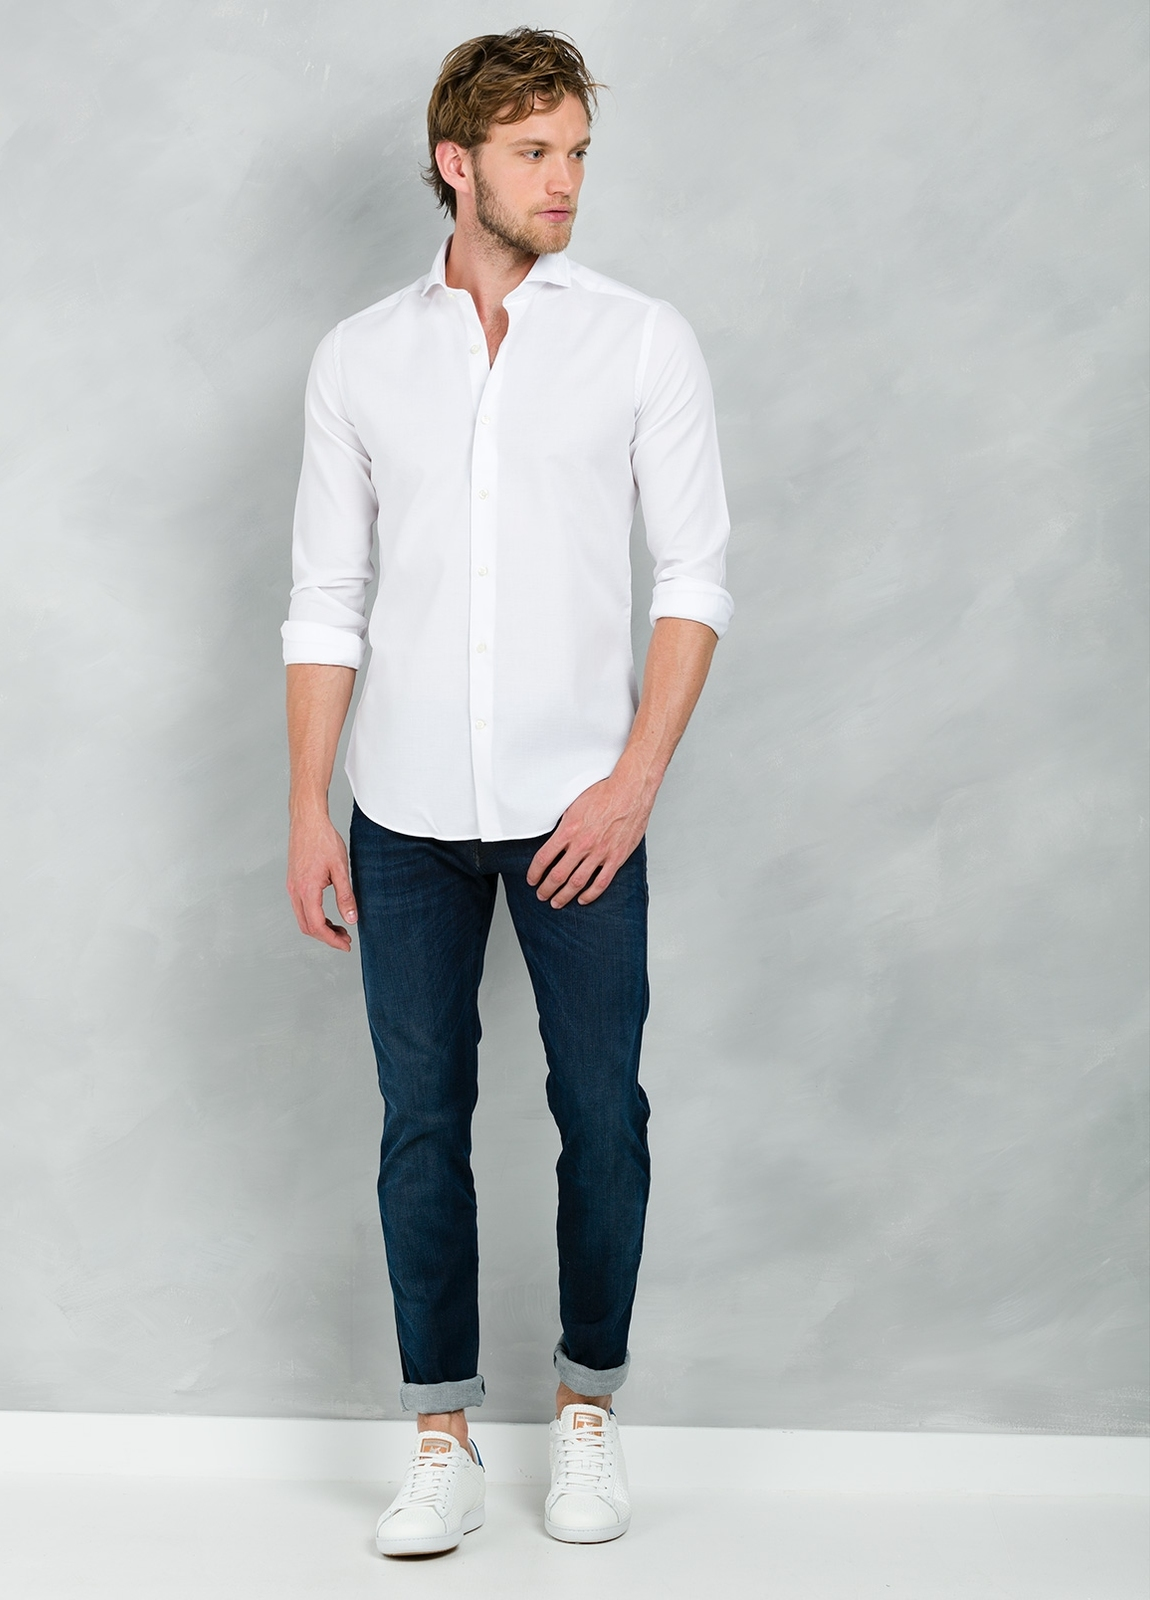 Camisa Casual Wear SLIM FIT Modelo CAPRI lisa color blanco, 100% Algodón.